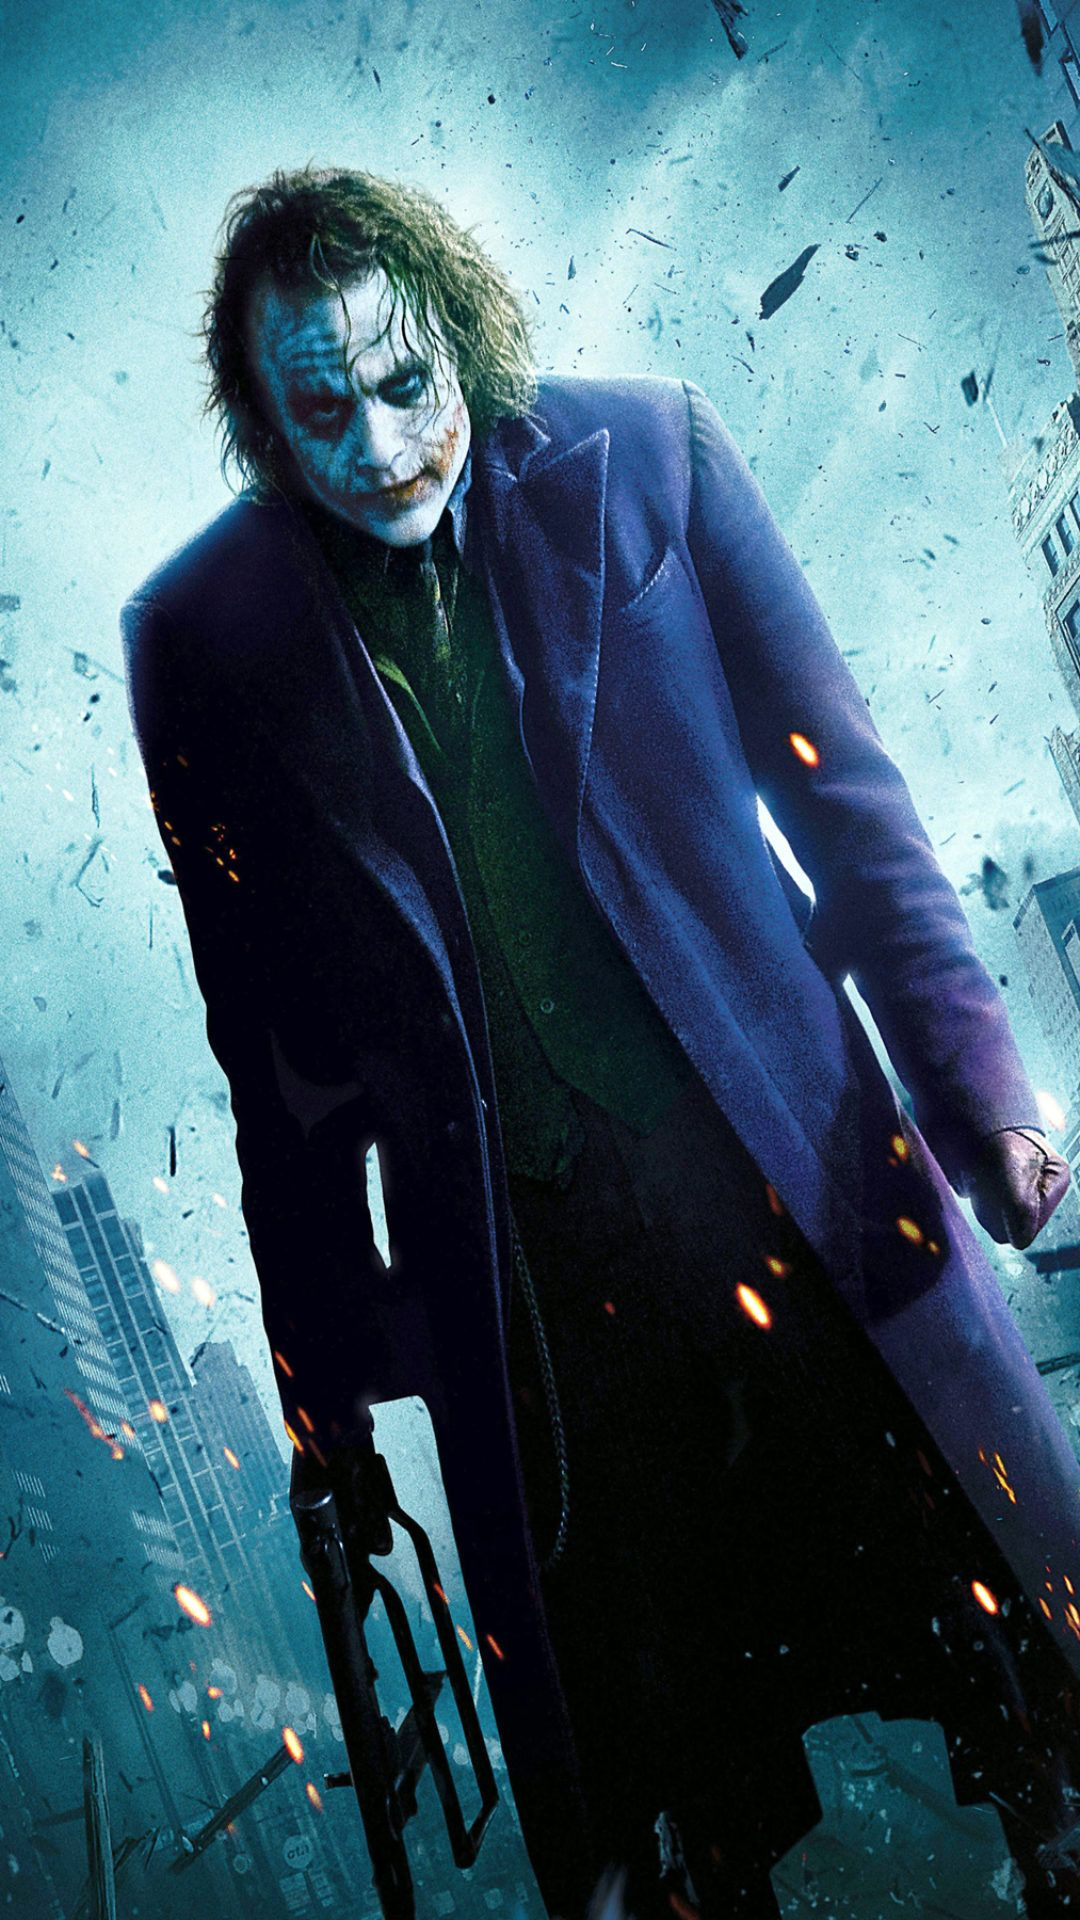 Joker Hd Wallpapers For Iphone 6 32 Image Collections Of